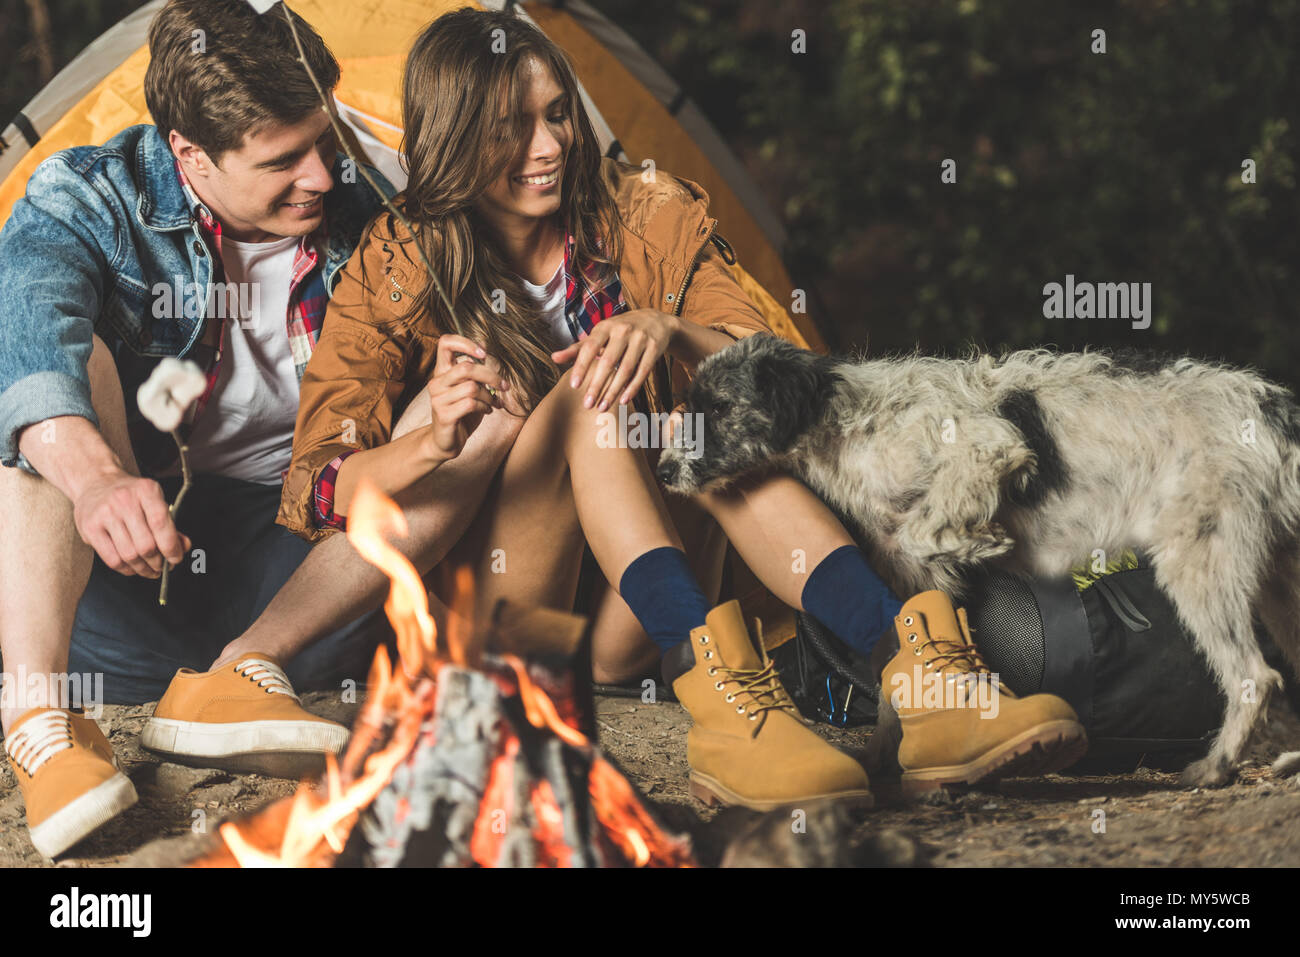 young happy couple on hiking trip with old dog roasting marshmallow - Stock Image